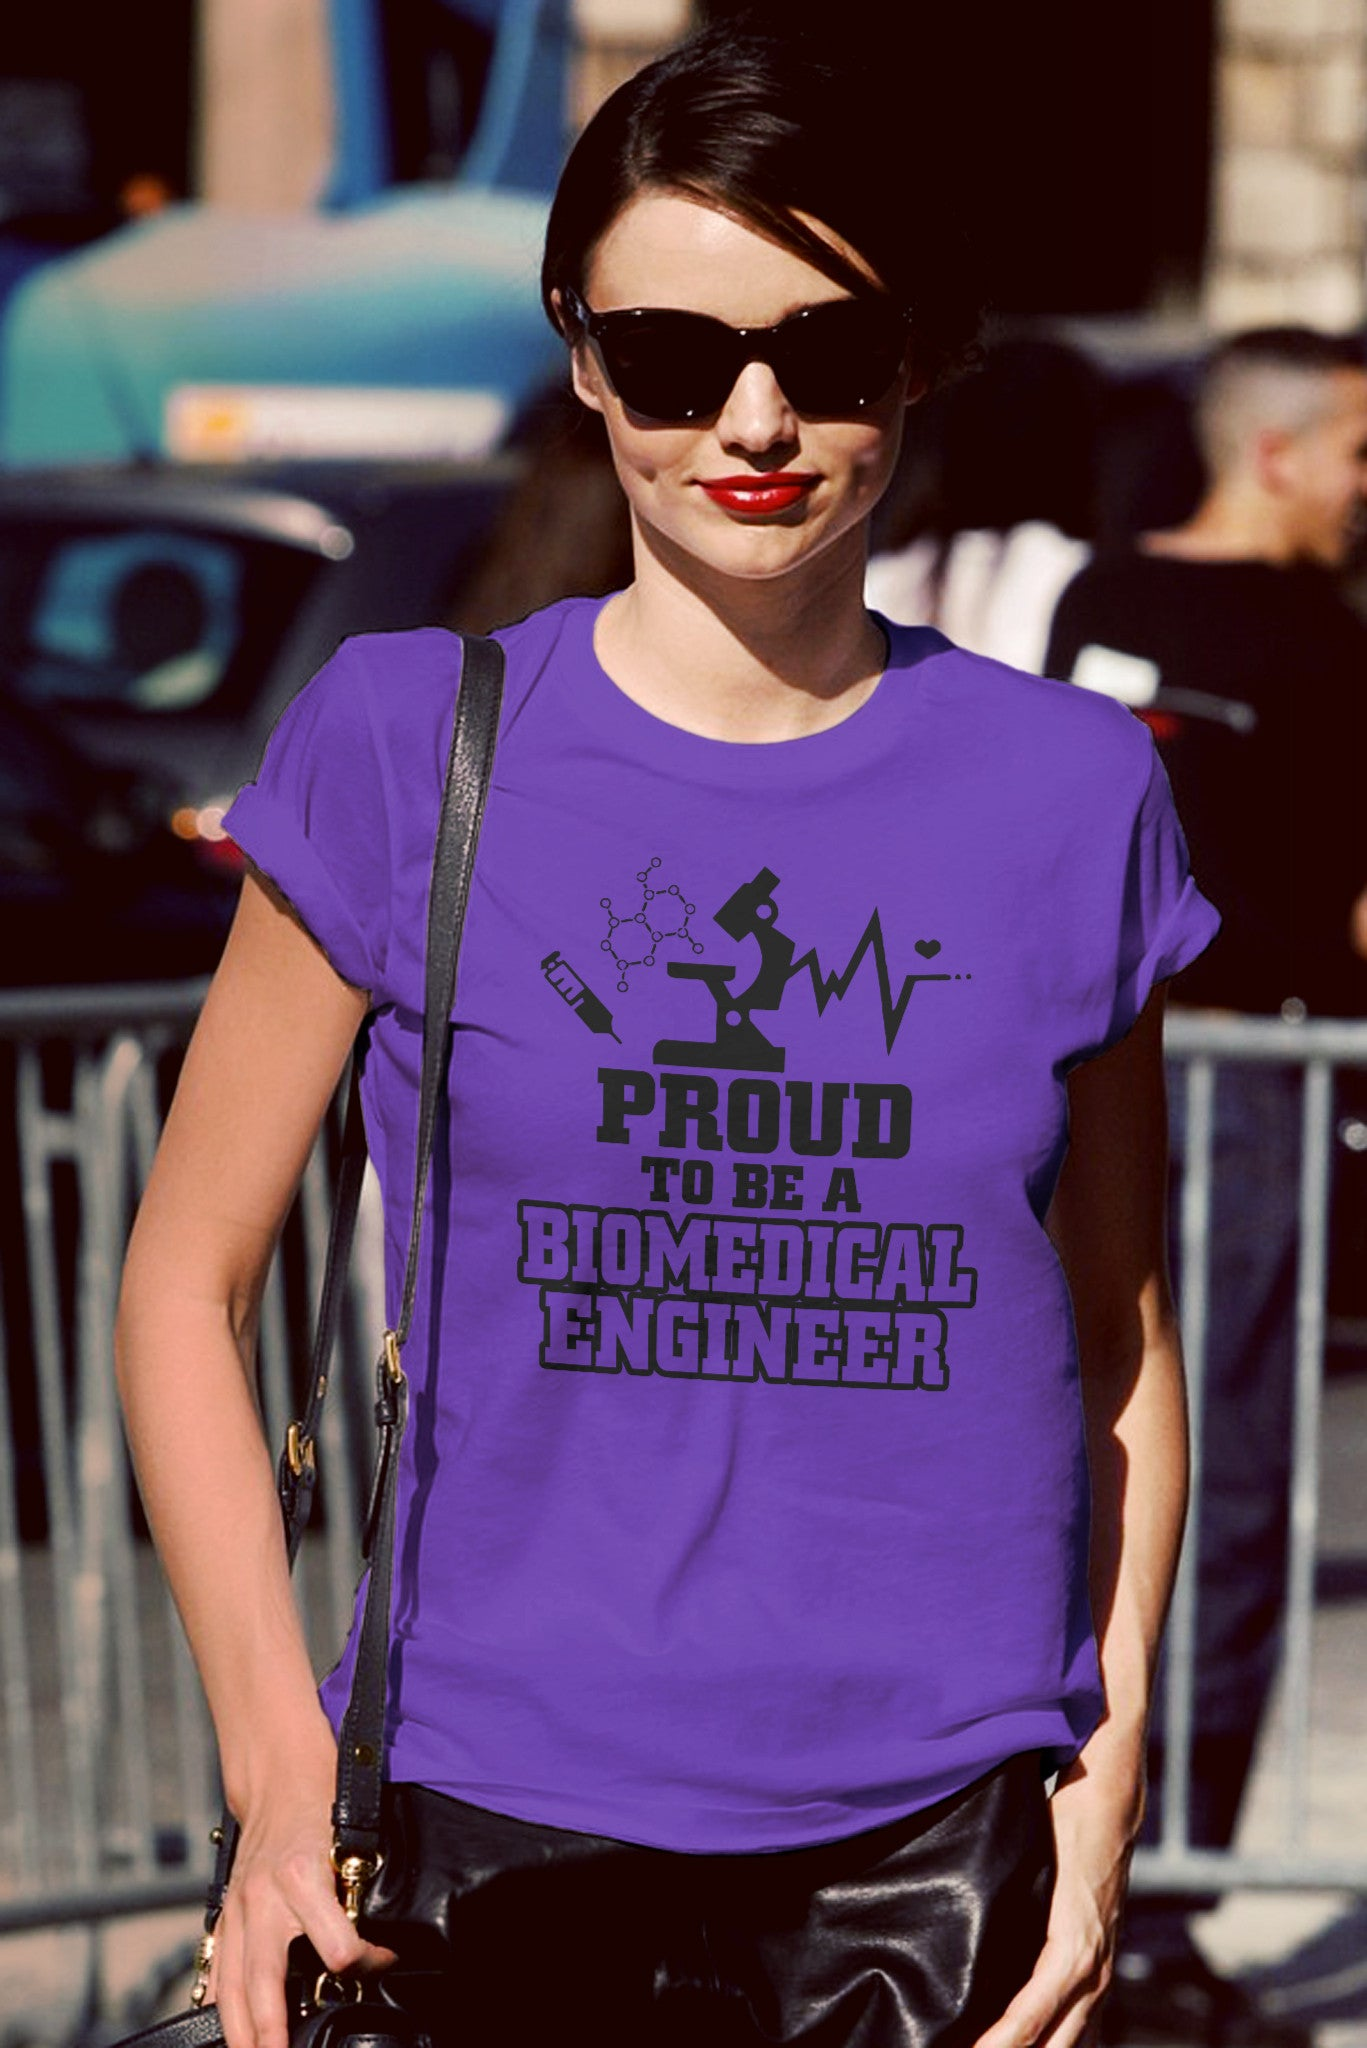 Proud to be a Biomedical Engineer (Women)